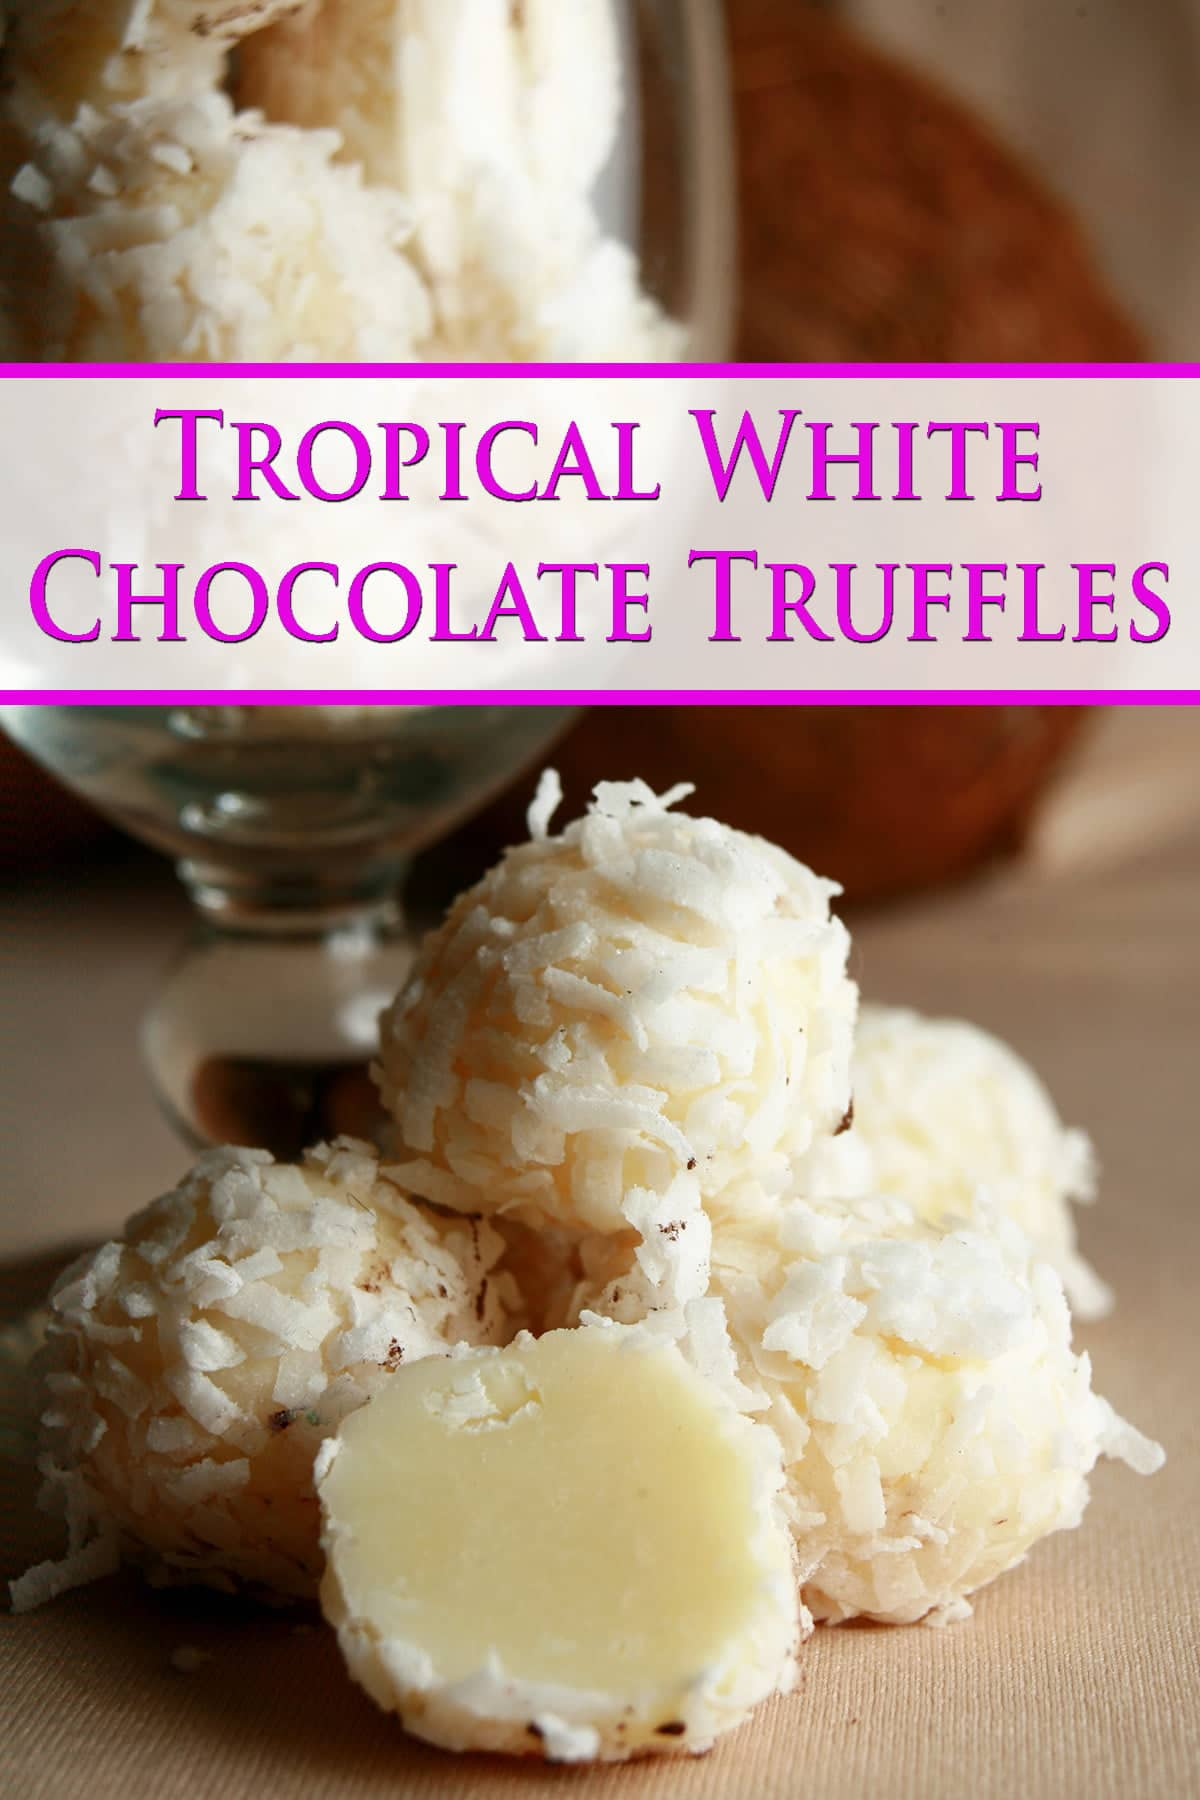 Several Tropical White Chocolate Truffles are piled at the base of a cocktail glass. More truffles are contaied within the glass.